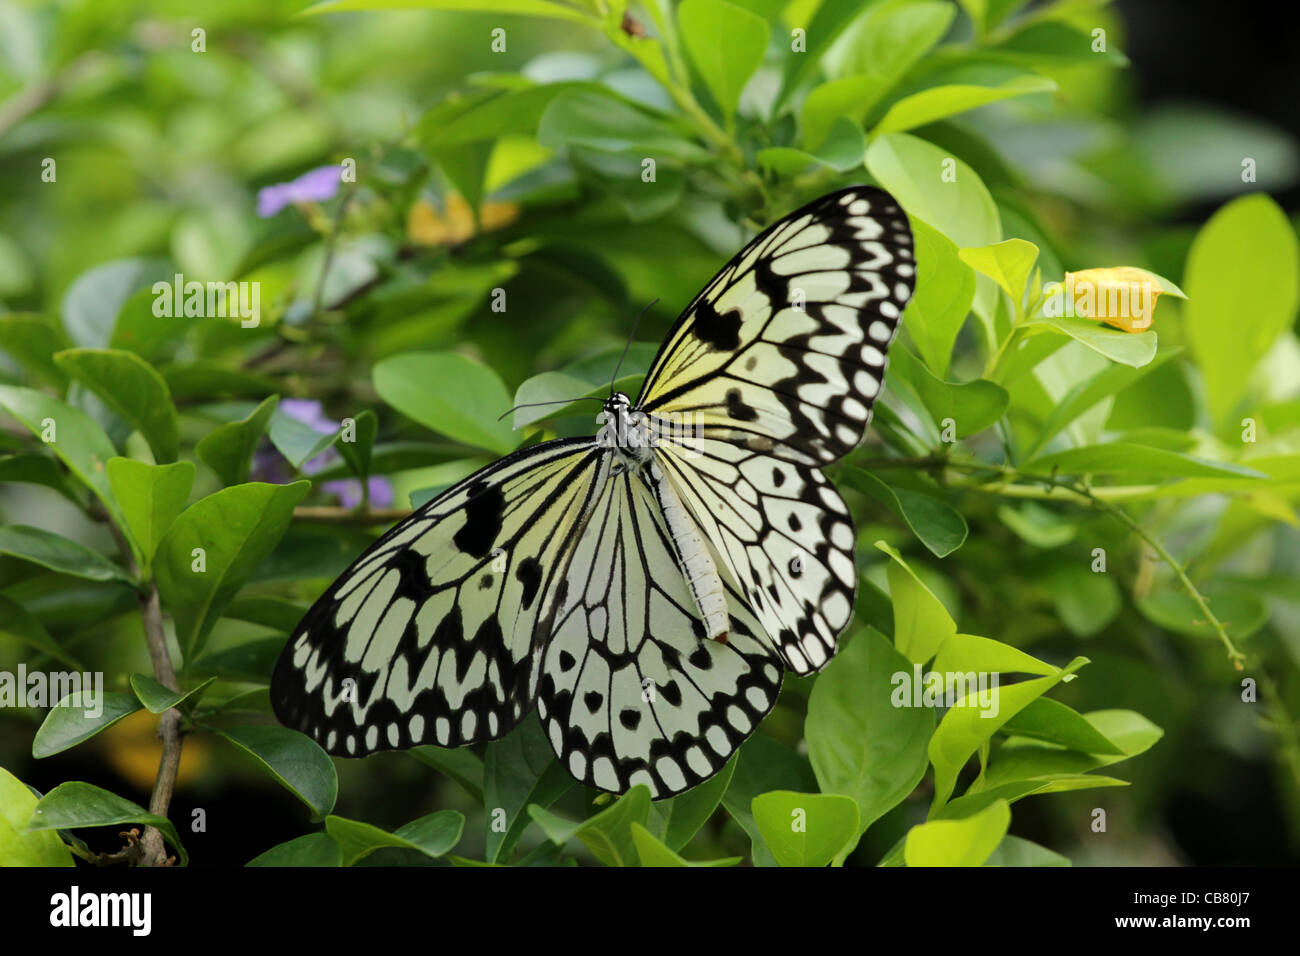 The Paper Kite, Rice Paper, or Large Tree Nymph butterfly (Idea leuconoe) - Stock Image